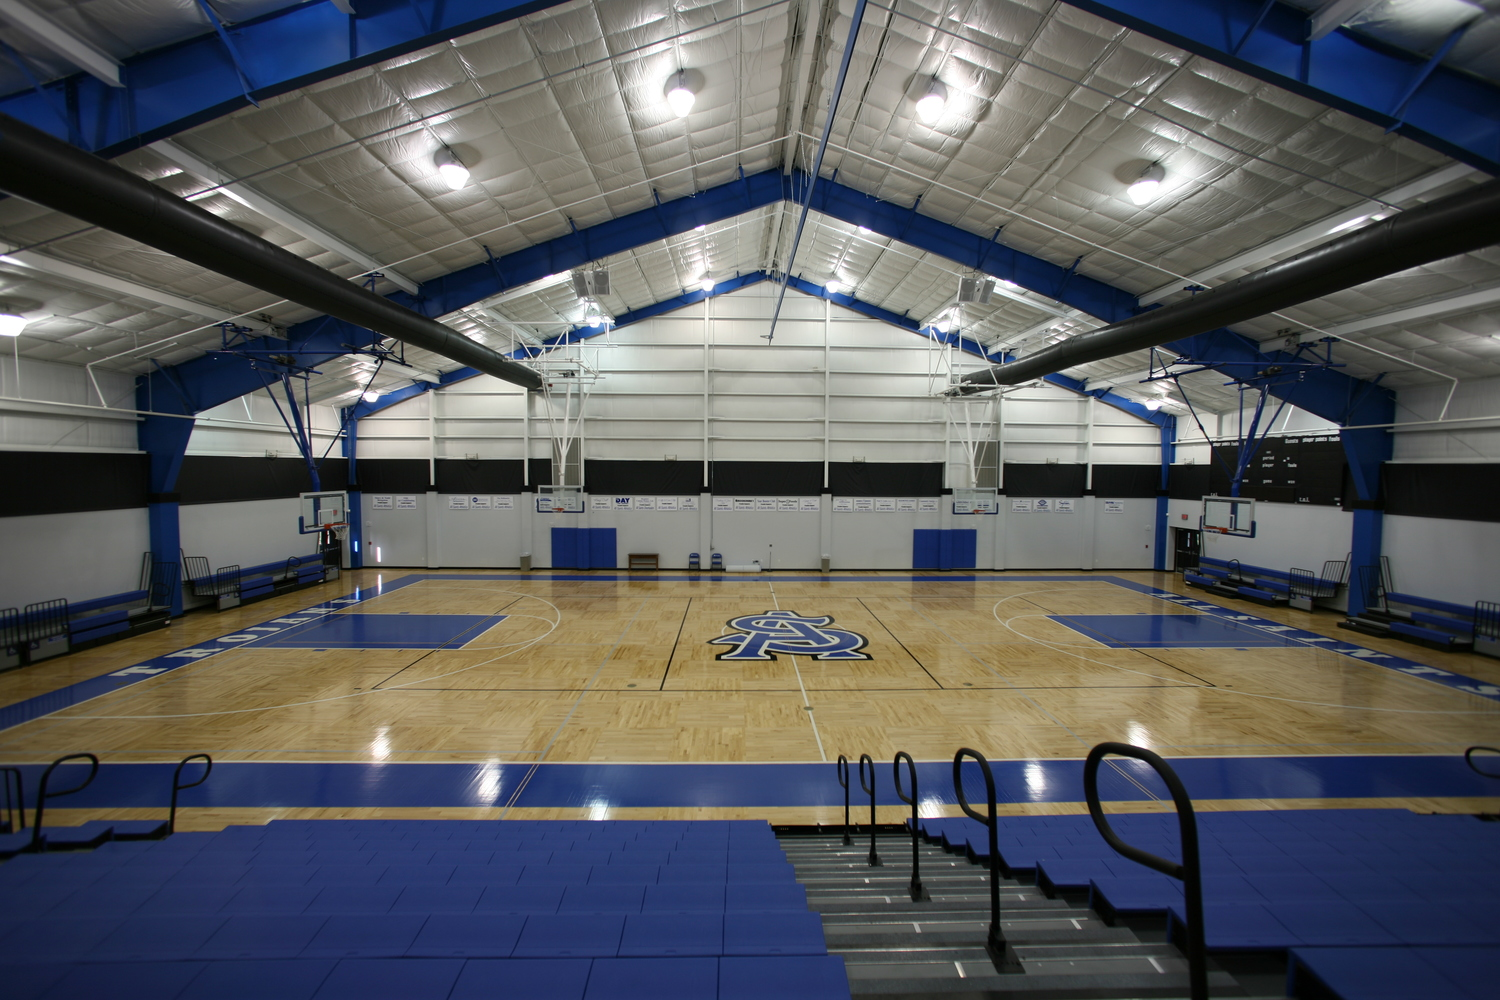 student recreation center architect east texas - architect for rec facilities east texas - tyler texas sports architect - butler architectural group